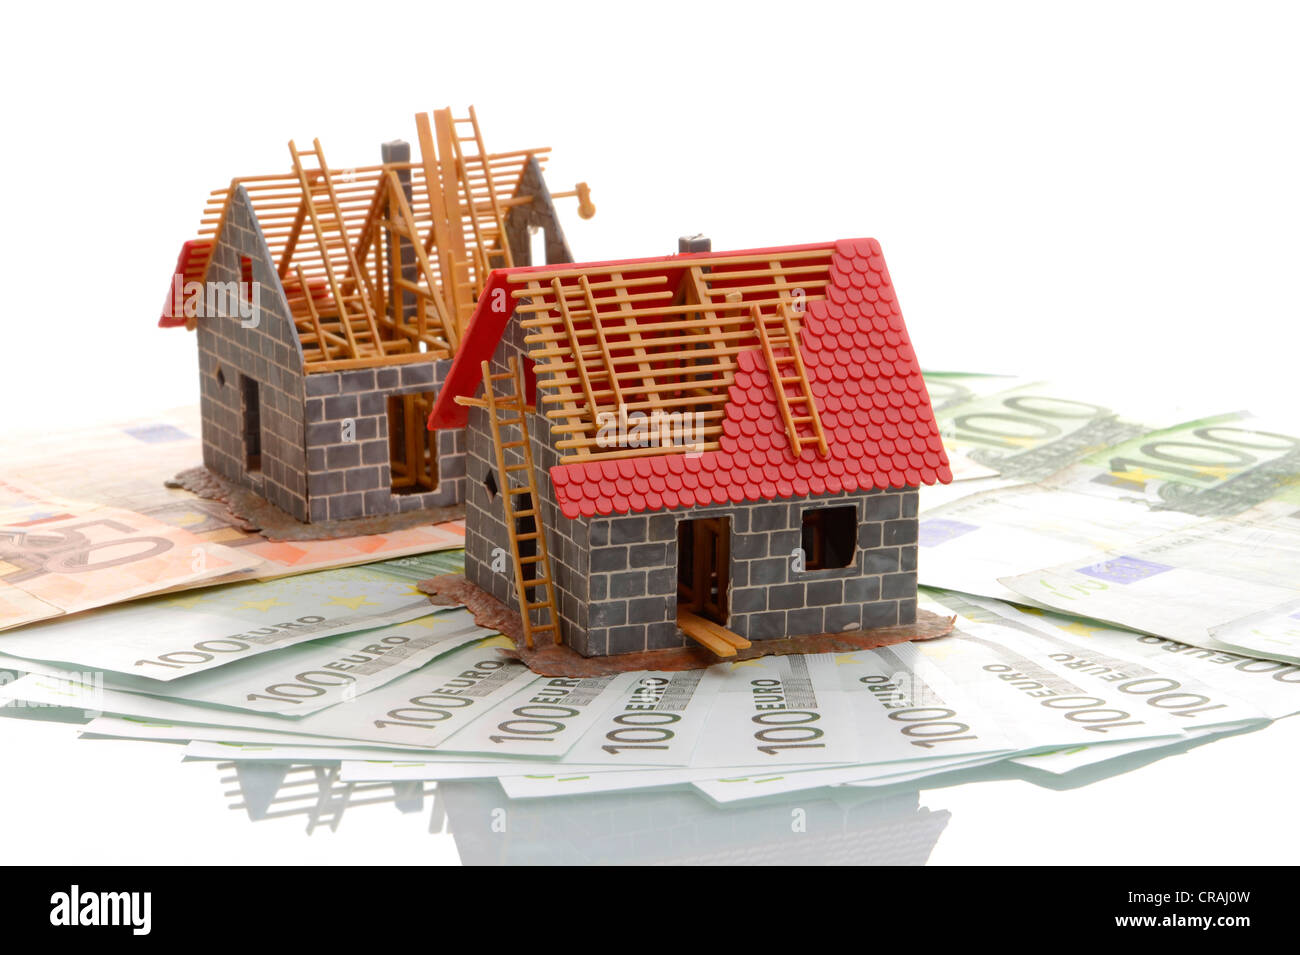 Models of houses under construction on banknotes, symbolic image for mortgage - Stock Image